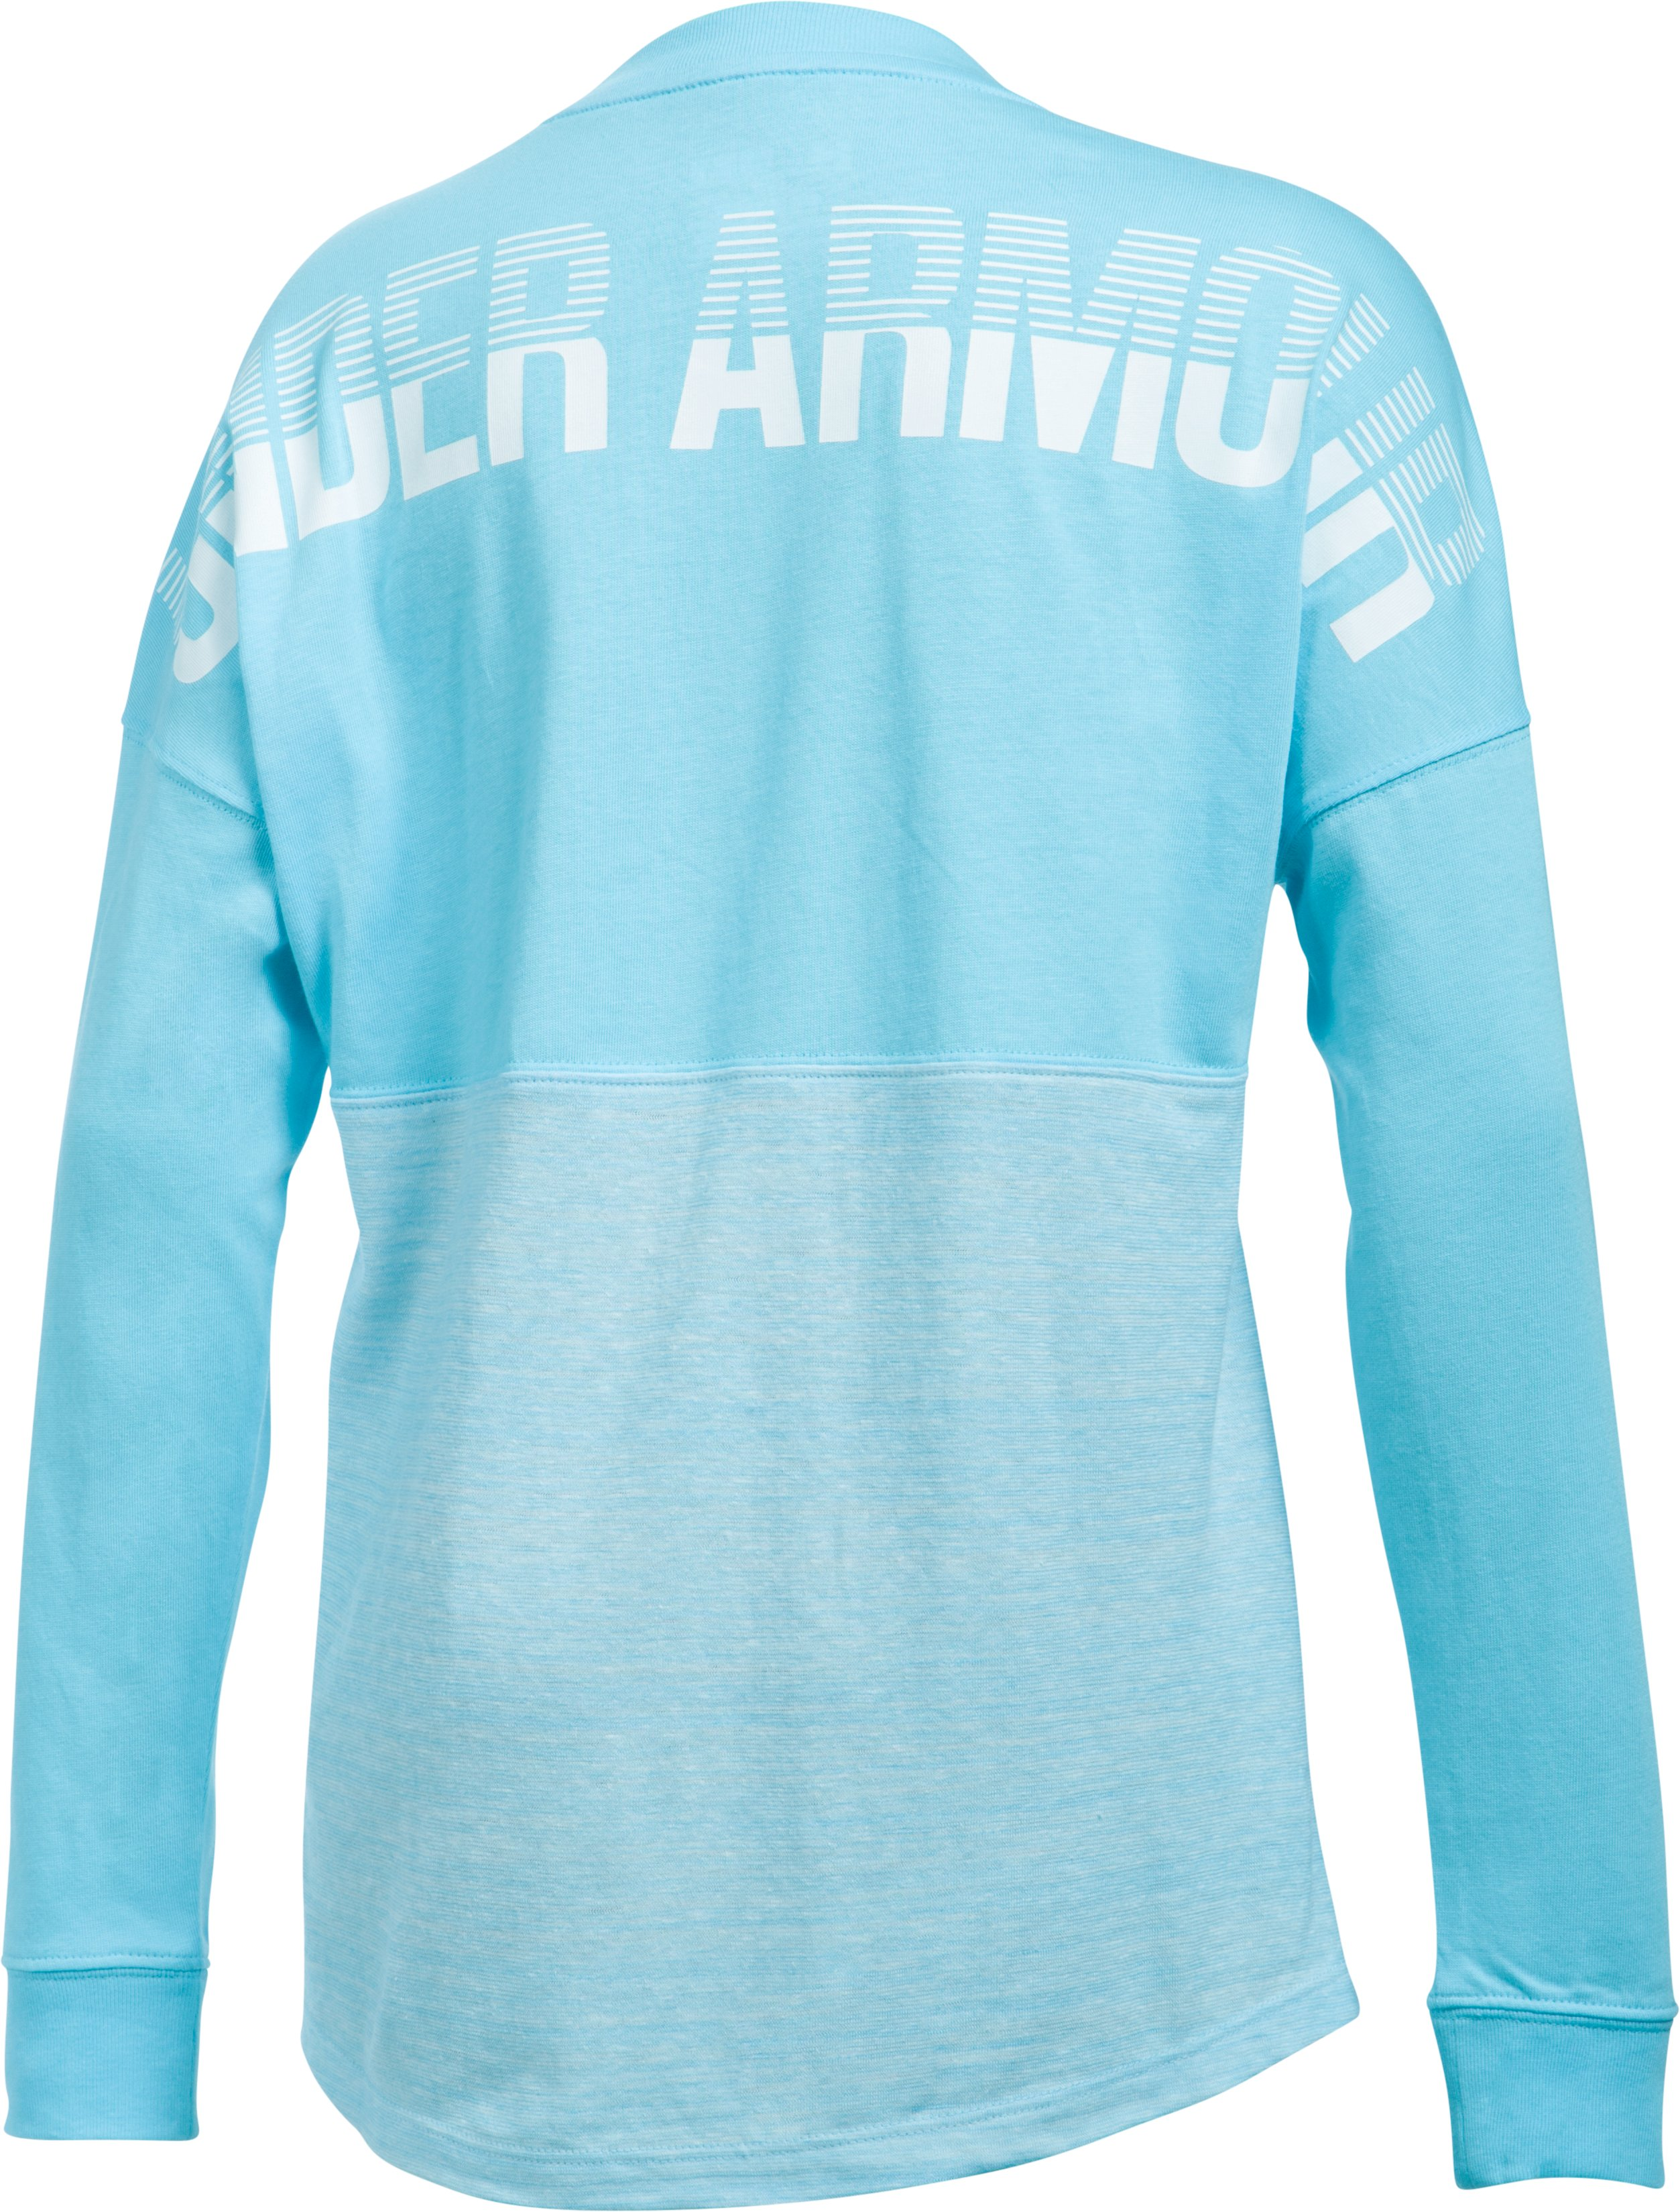 Girls' UA Varsity Crew Long Sleeve, Venetian Blue, zoomed image